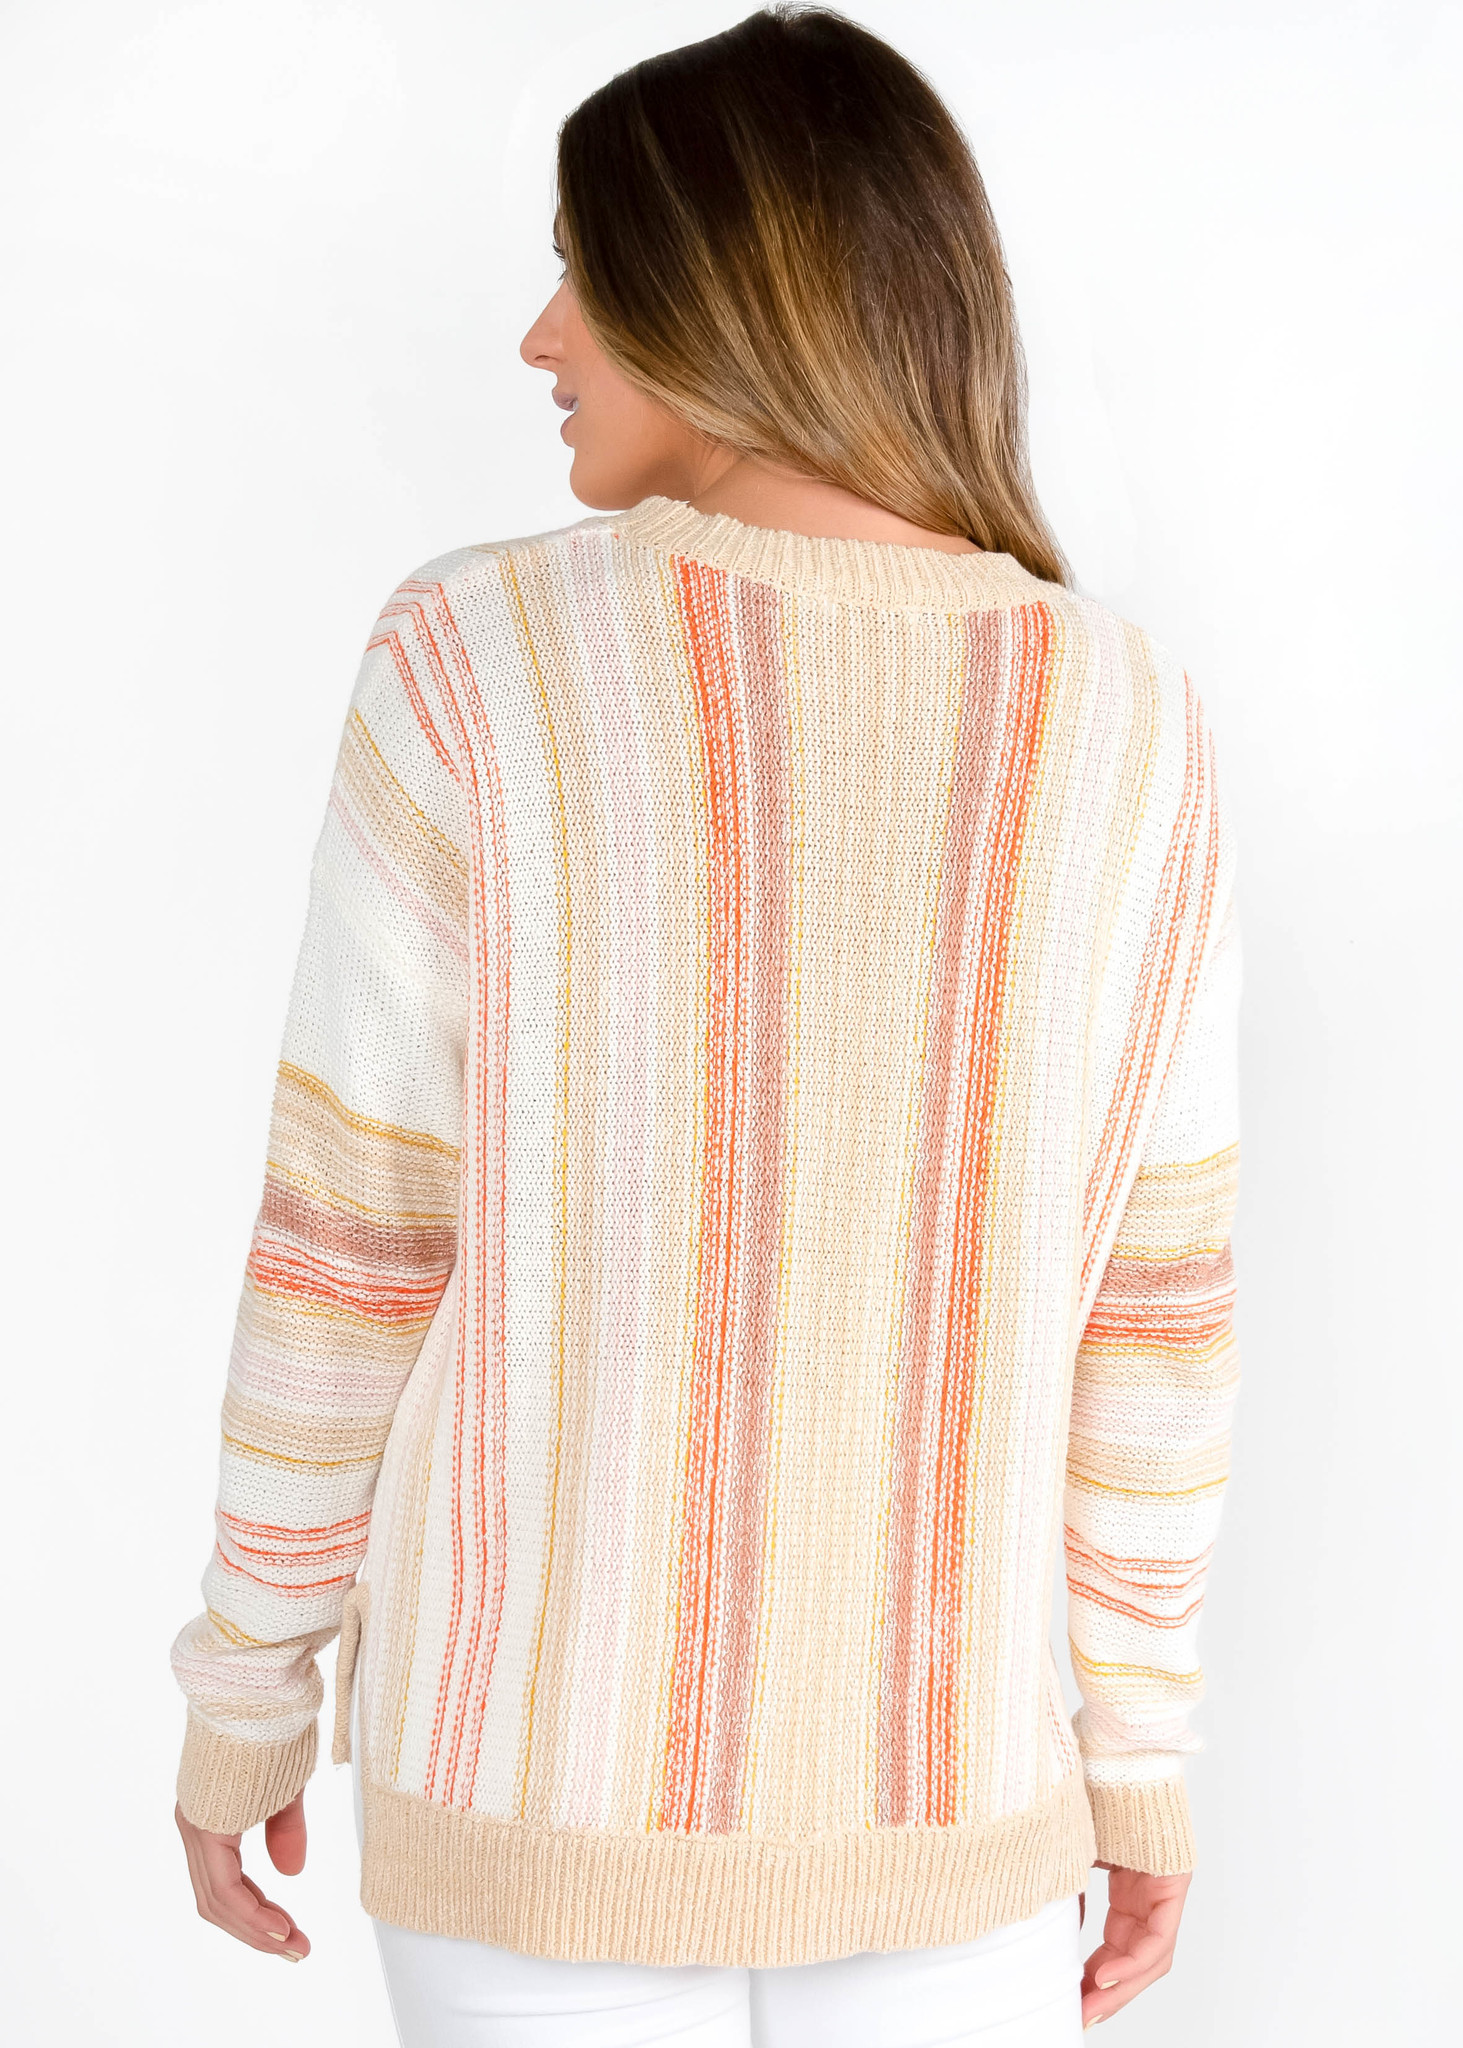 GOLDEN HOUR STRIPED SWEATER